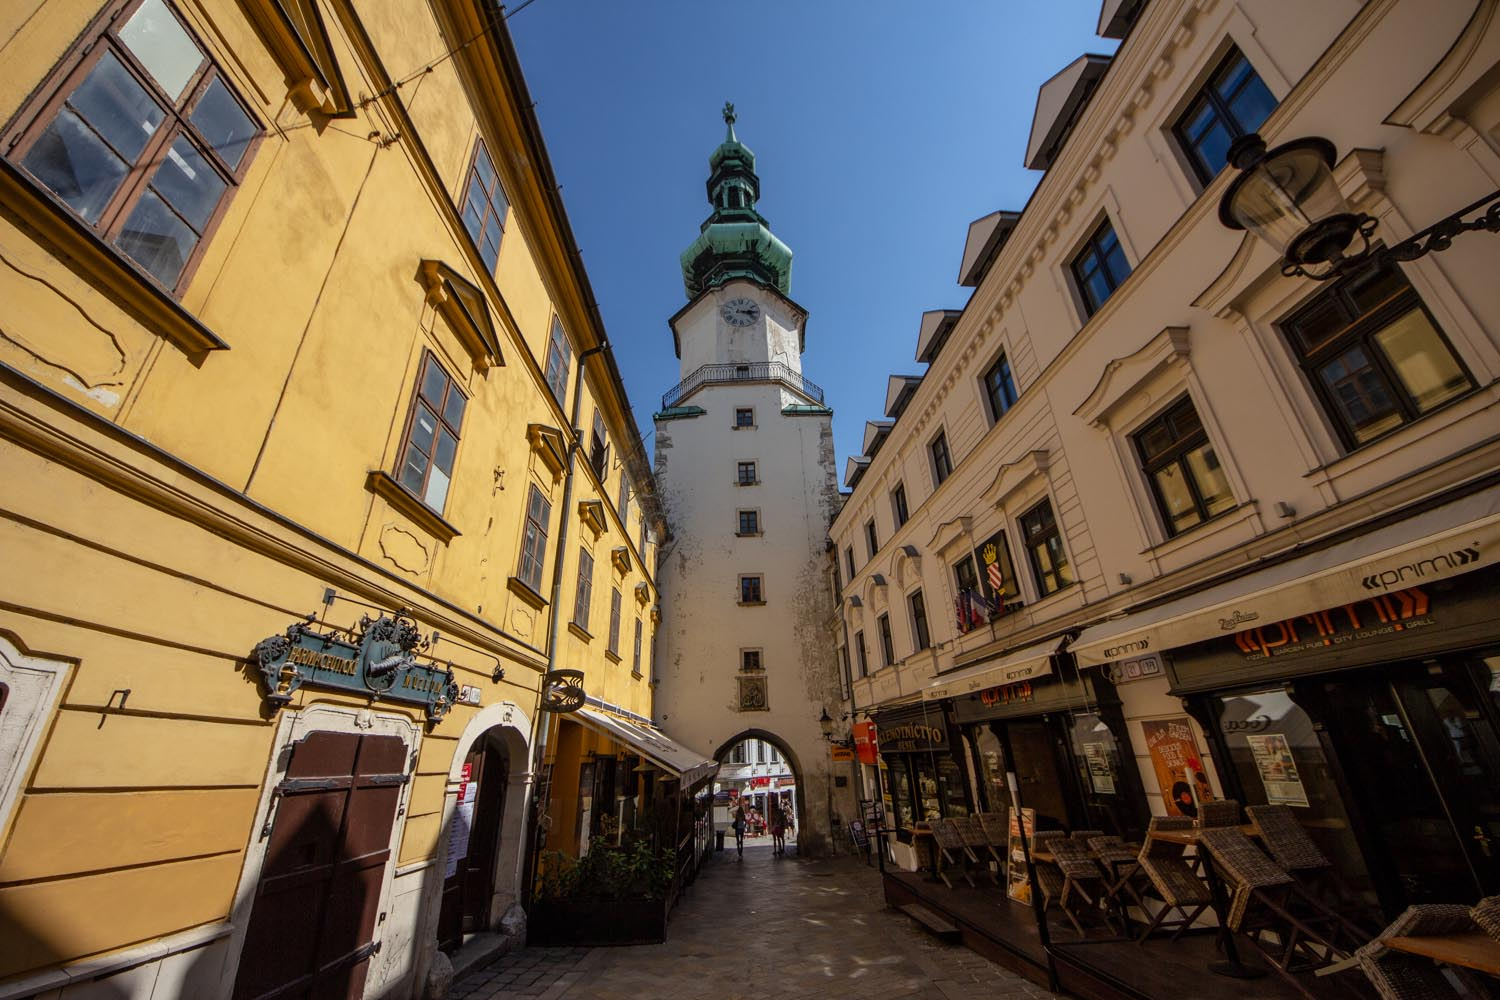 St. Michael's Gate is a top thing to see in Bratislava